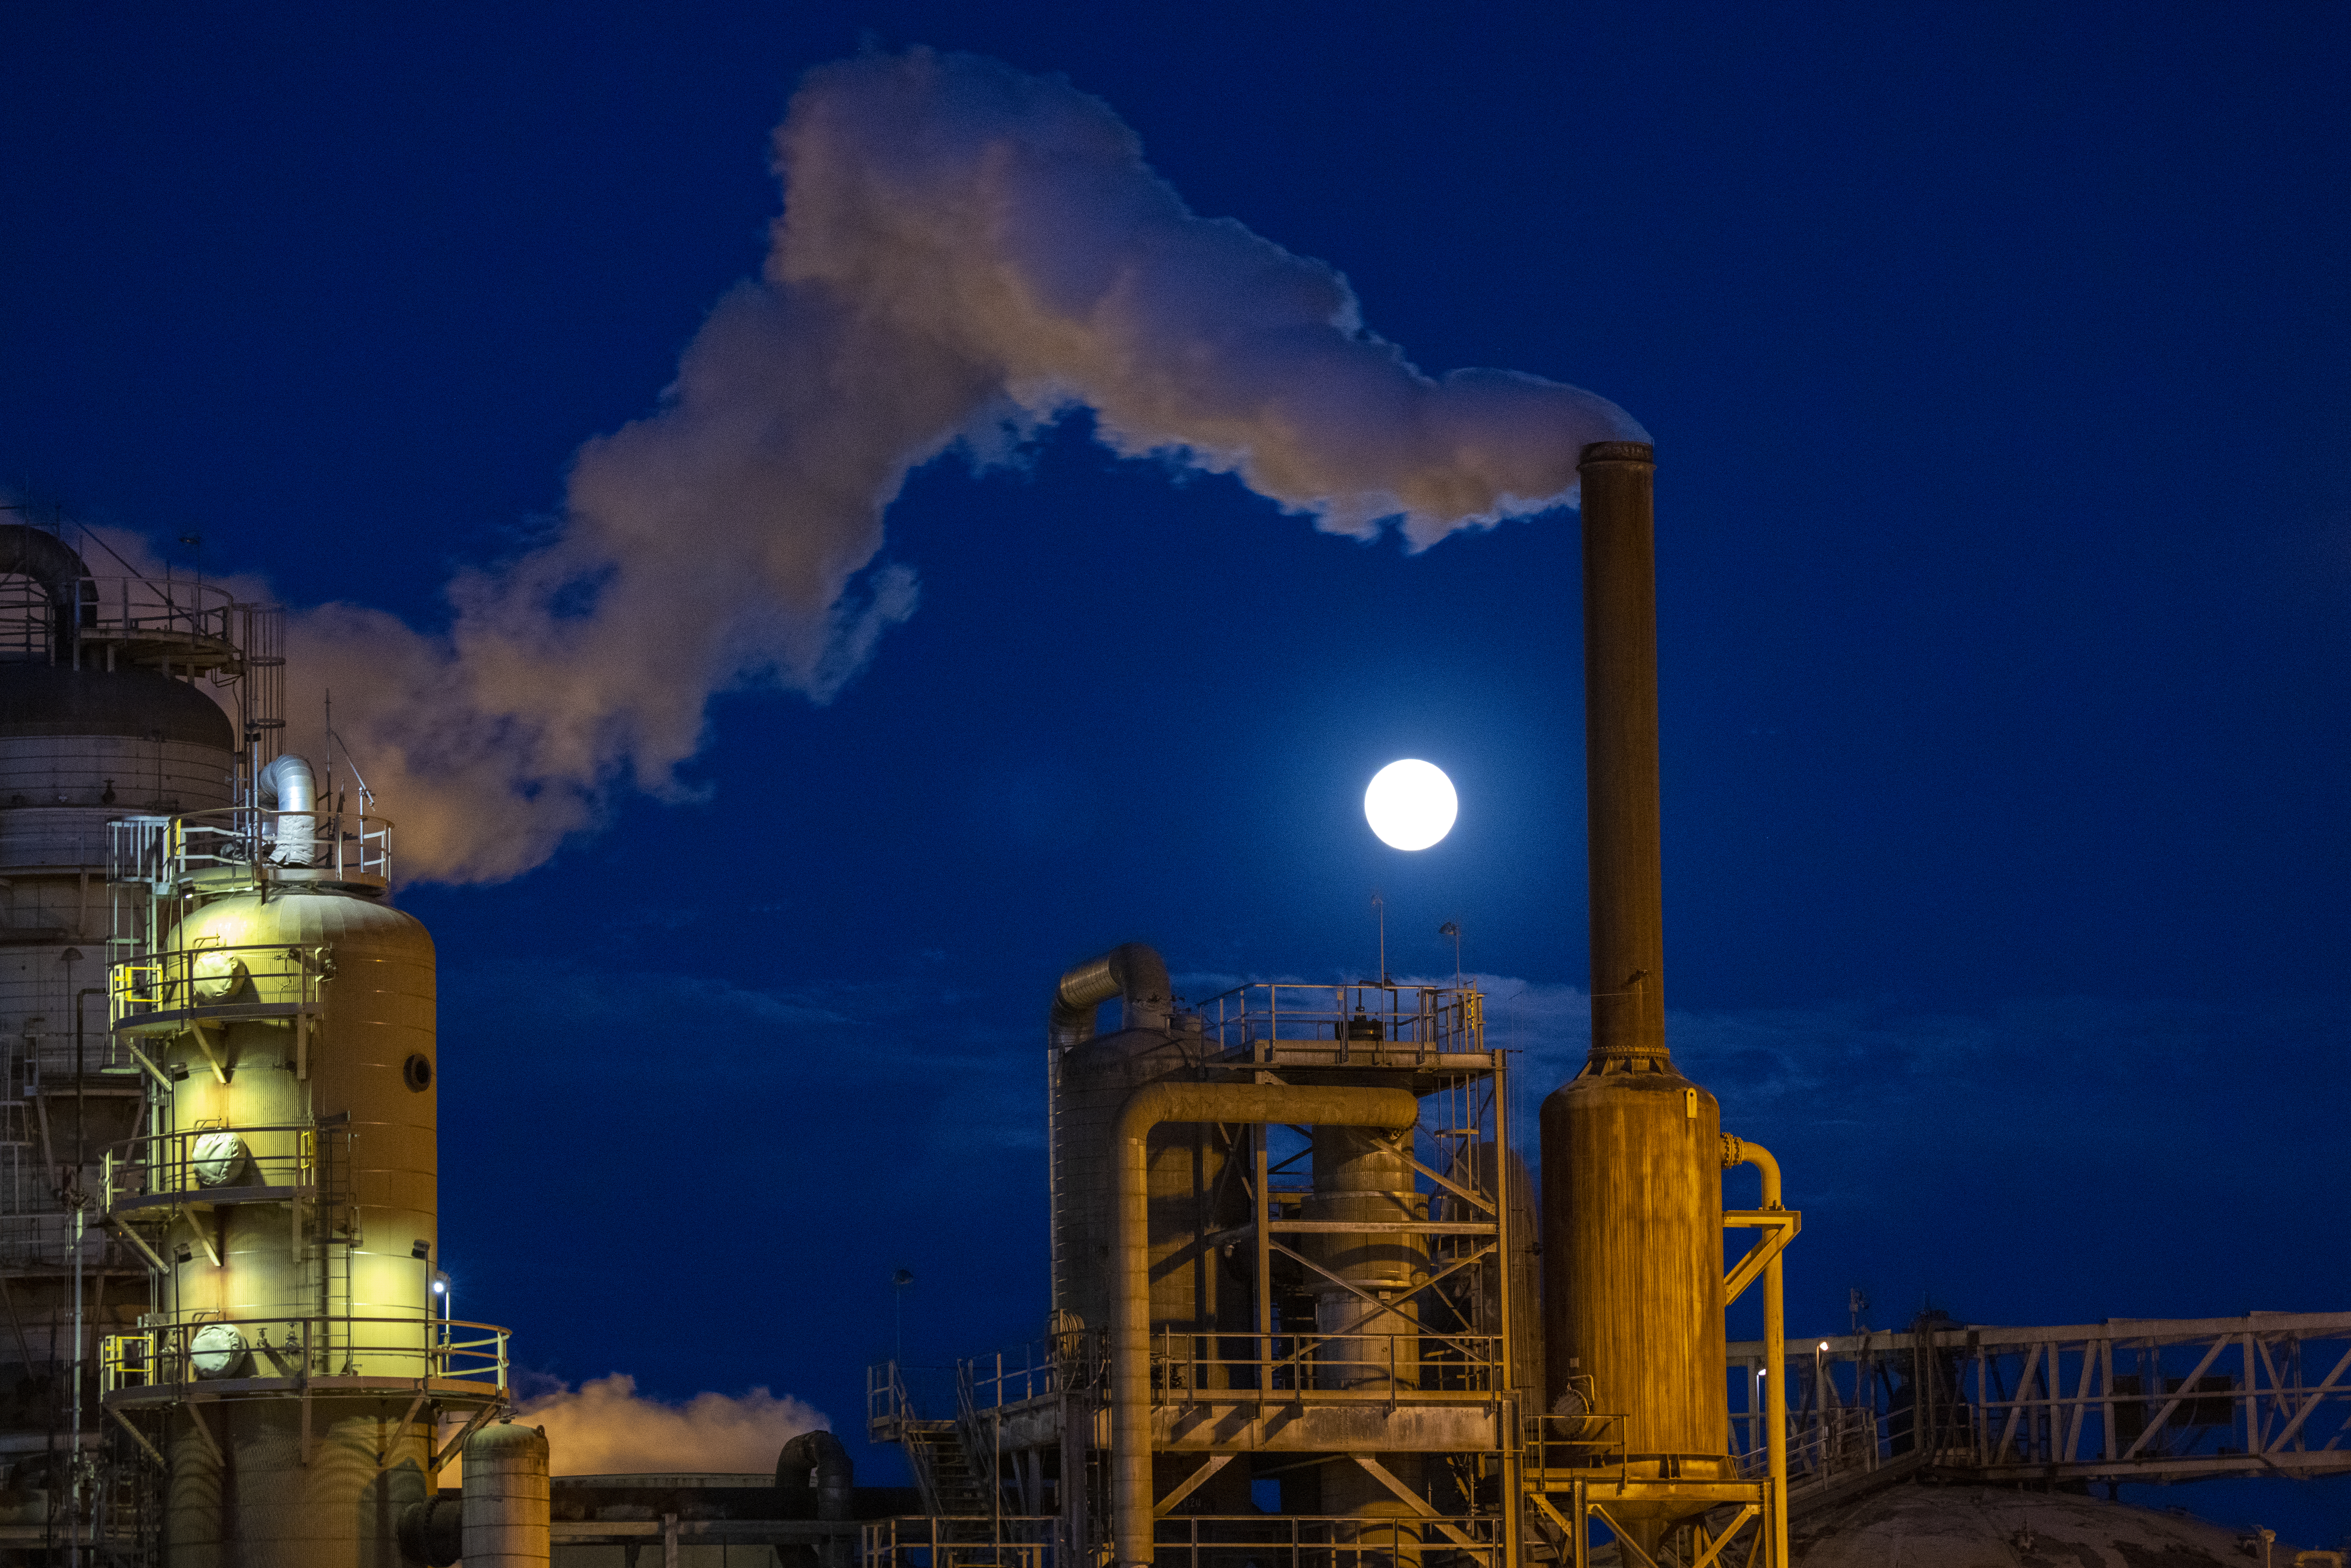 The Super Pink Moon rises as a strong wind blows steam escaping the Leathers Geothermal Facility, a power plant that taps into deep underground heat near the Salton Sea at the southern tip of the San Andreas Fault, on April 26, 2021 near Calipatria, California. Credit: David McNew/Getty Images